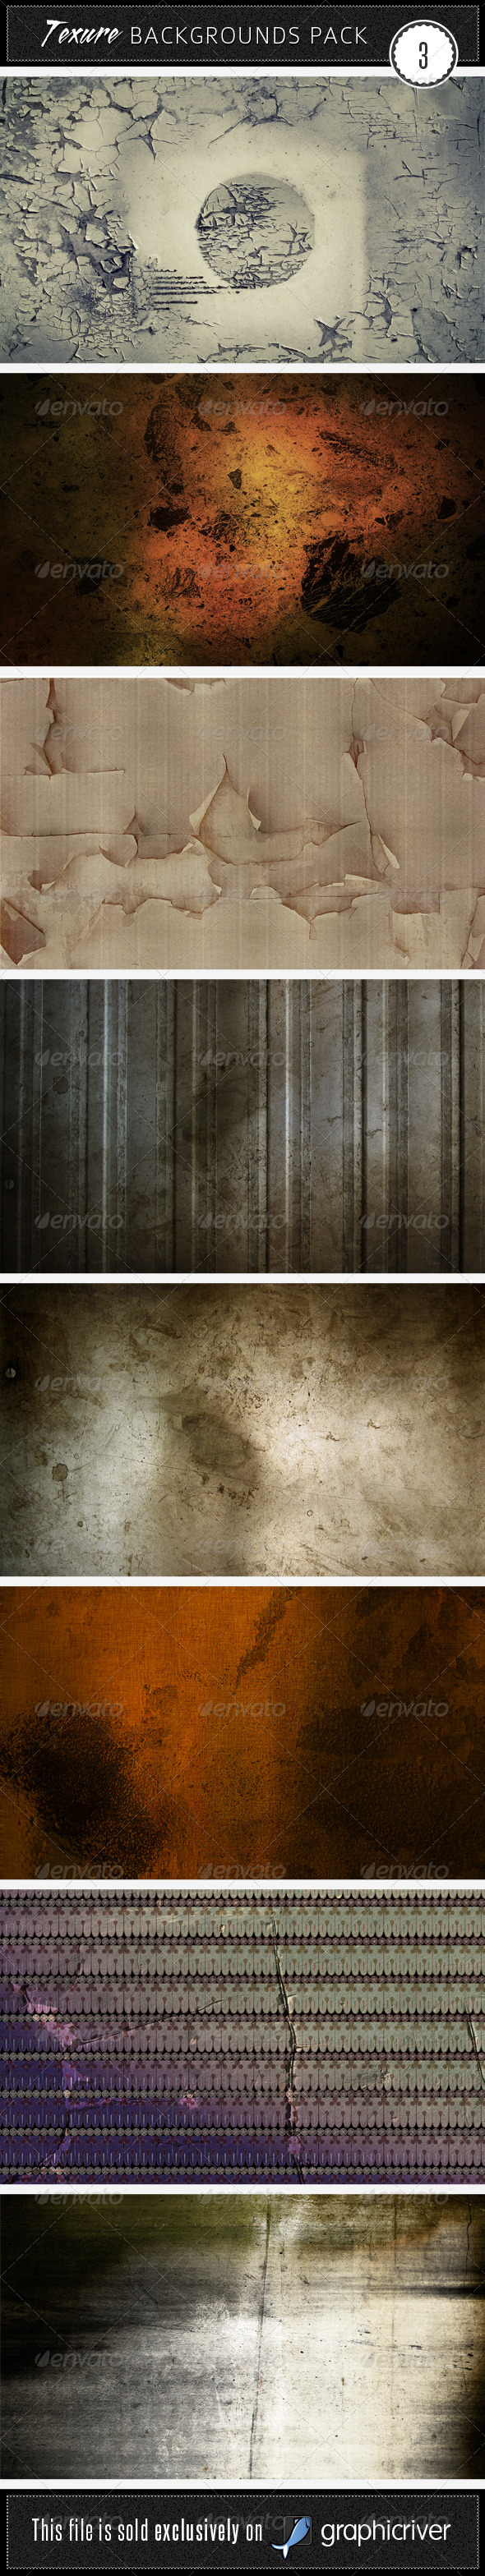 Texture Backgrounds Pack 3 - Miscellaneous Textures